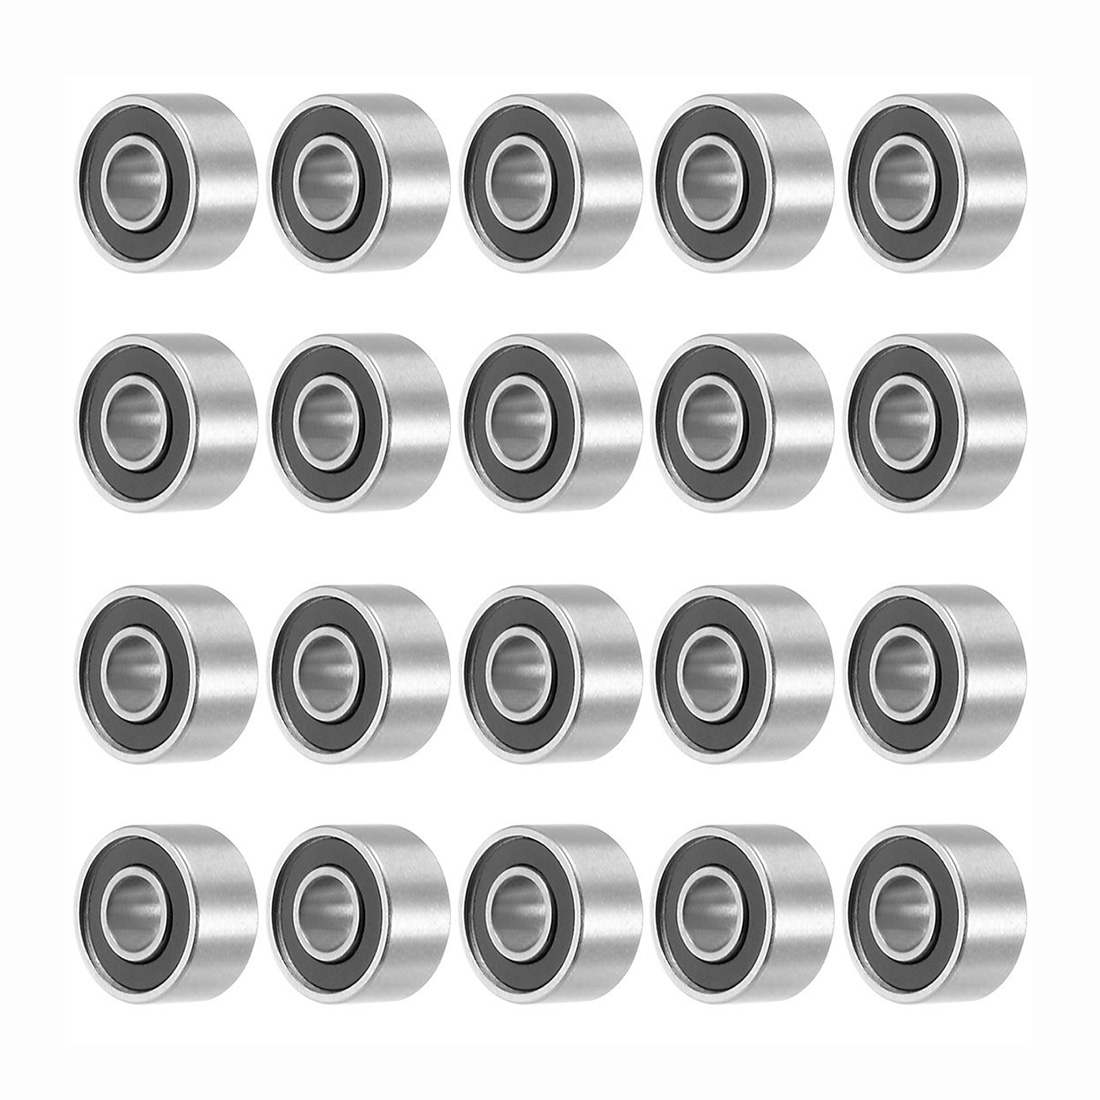 693RS 3mmx8mmx4mm Double Sealed Miniature Deep Groove Ball Bearing 20pcs